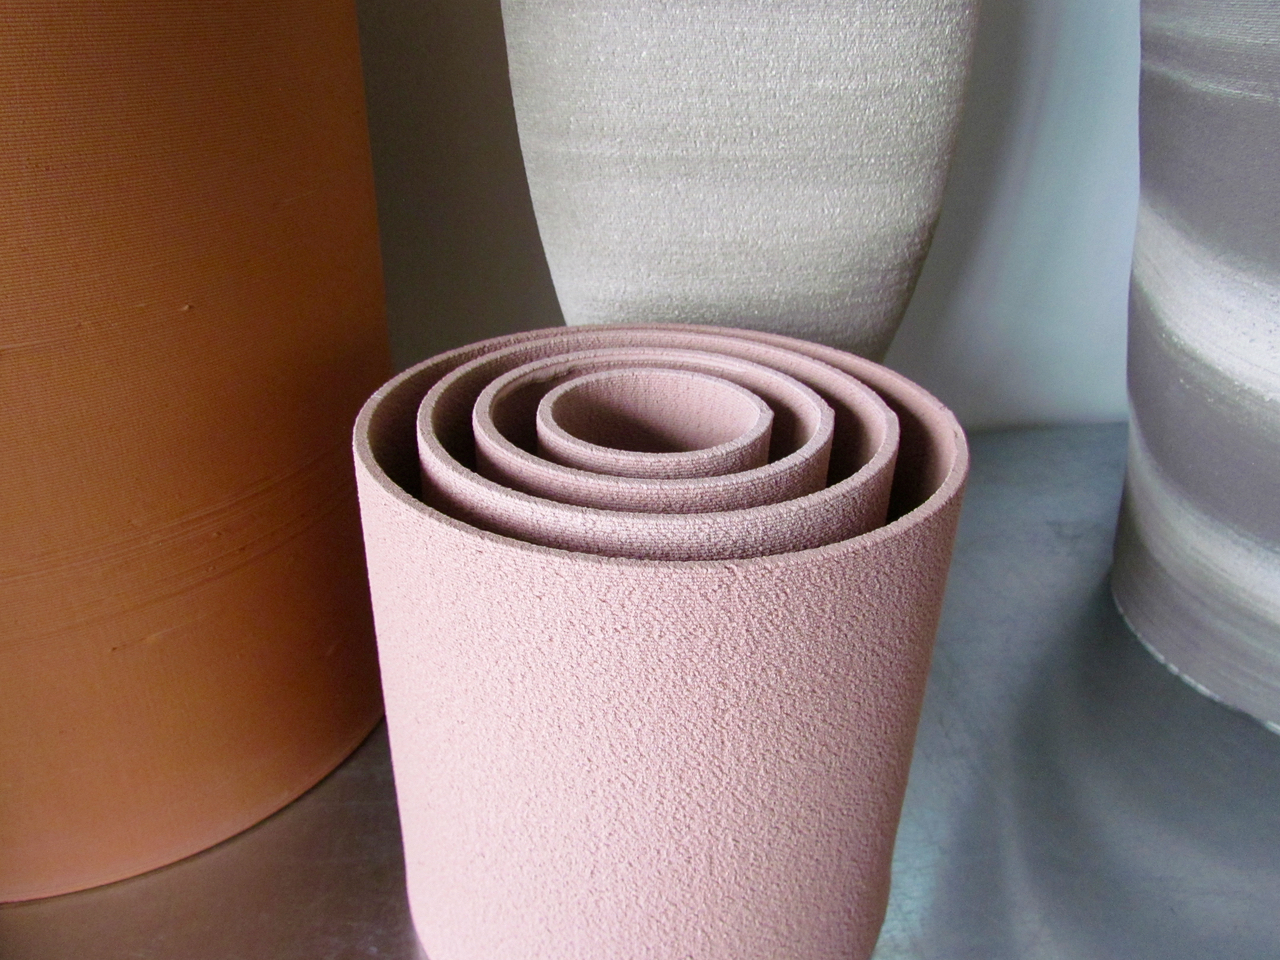 A selection of fine vases 3D printed in ceramics by Olivier van Herpt